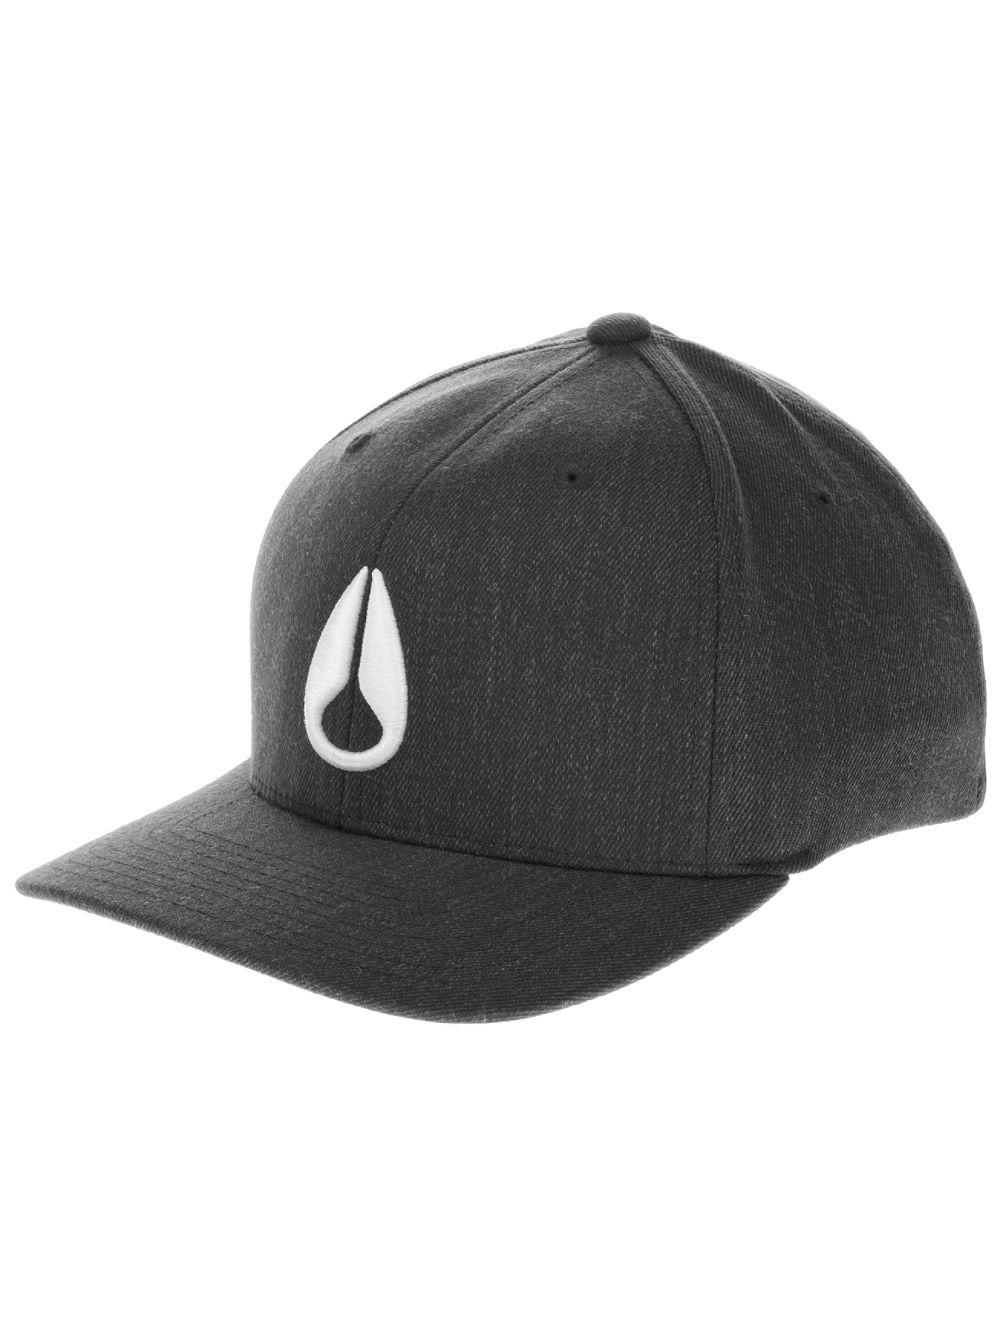 Deep Down Flex Fit Athletic Cap